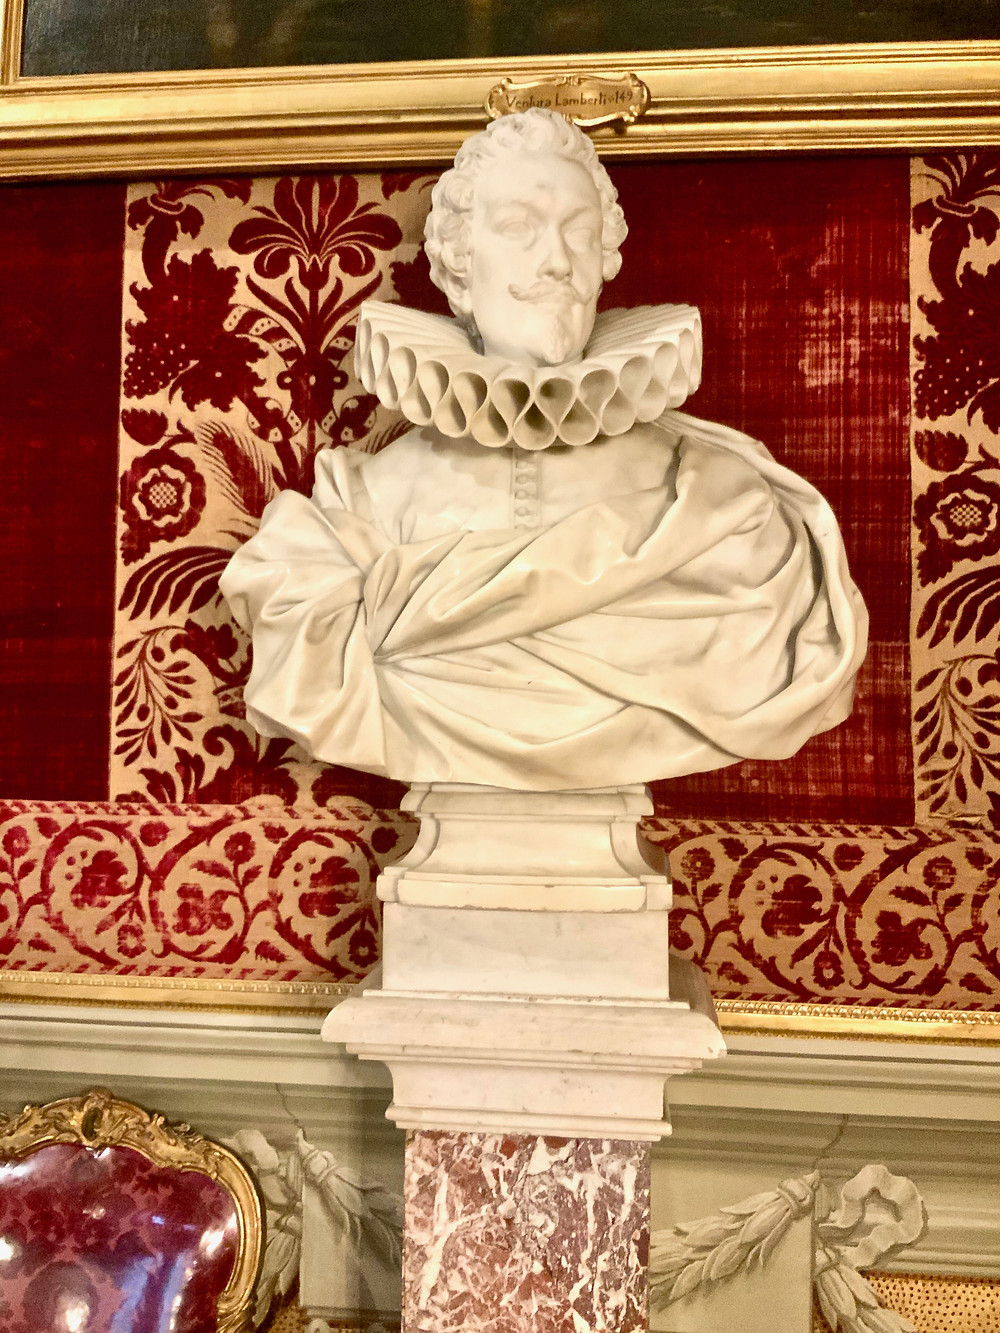 Bust of Benedetto Pamphilj in the Velvets Room -- just look at that ruffle